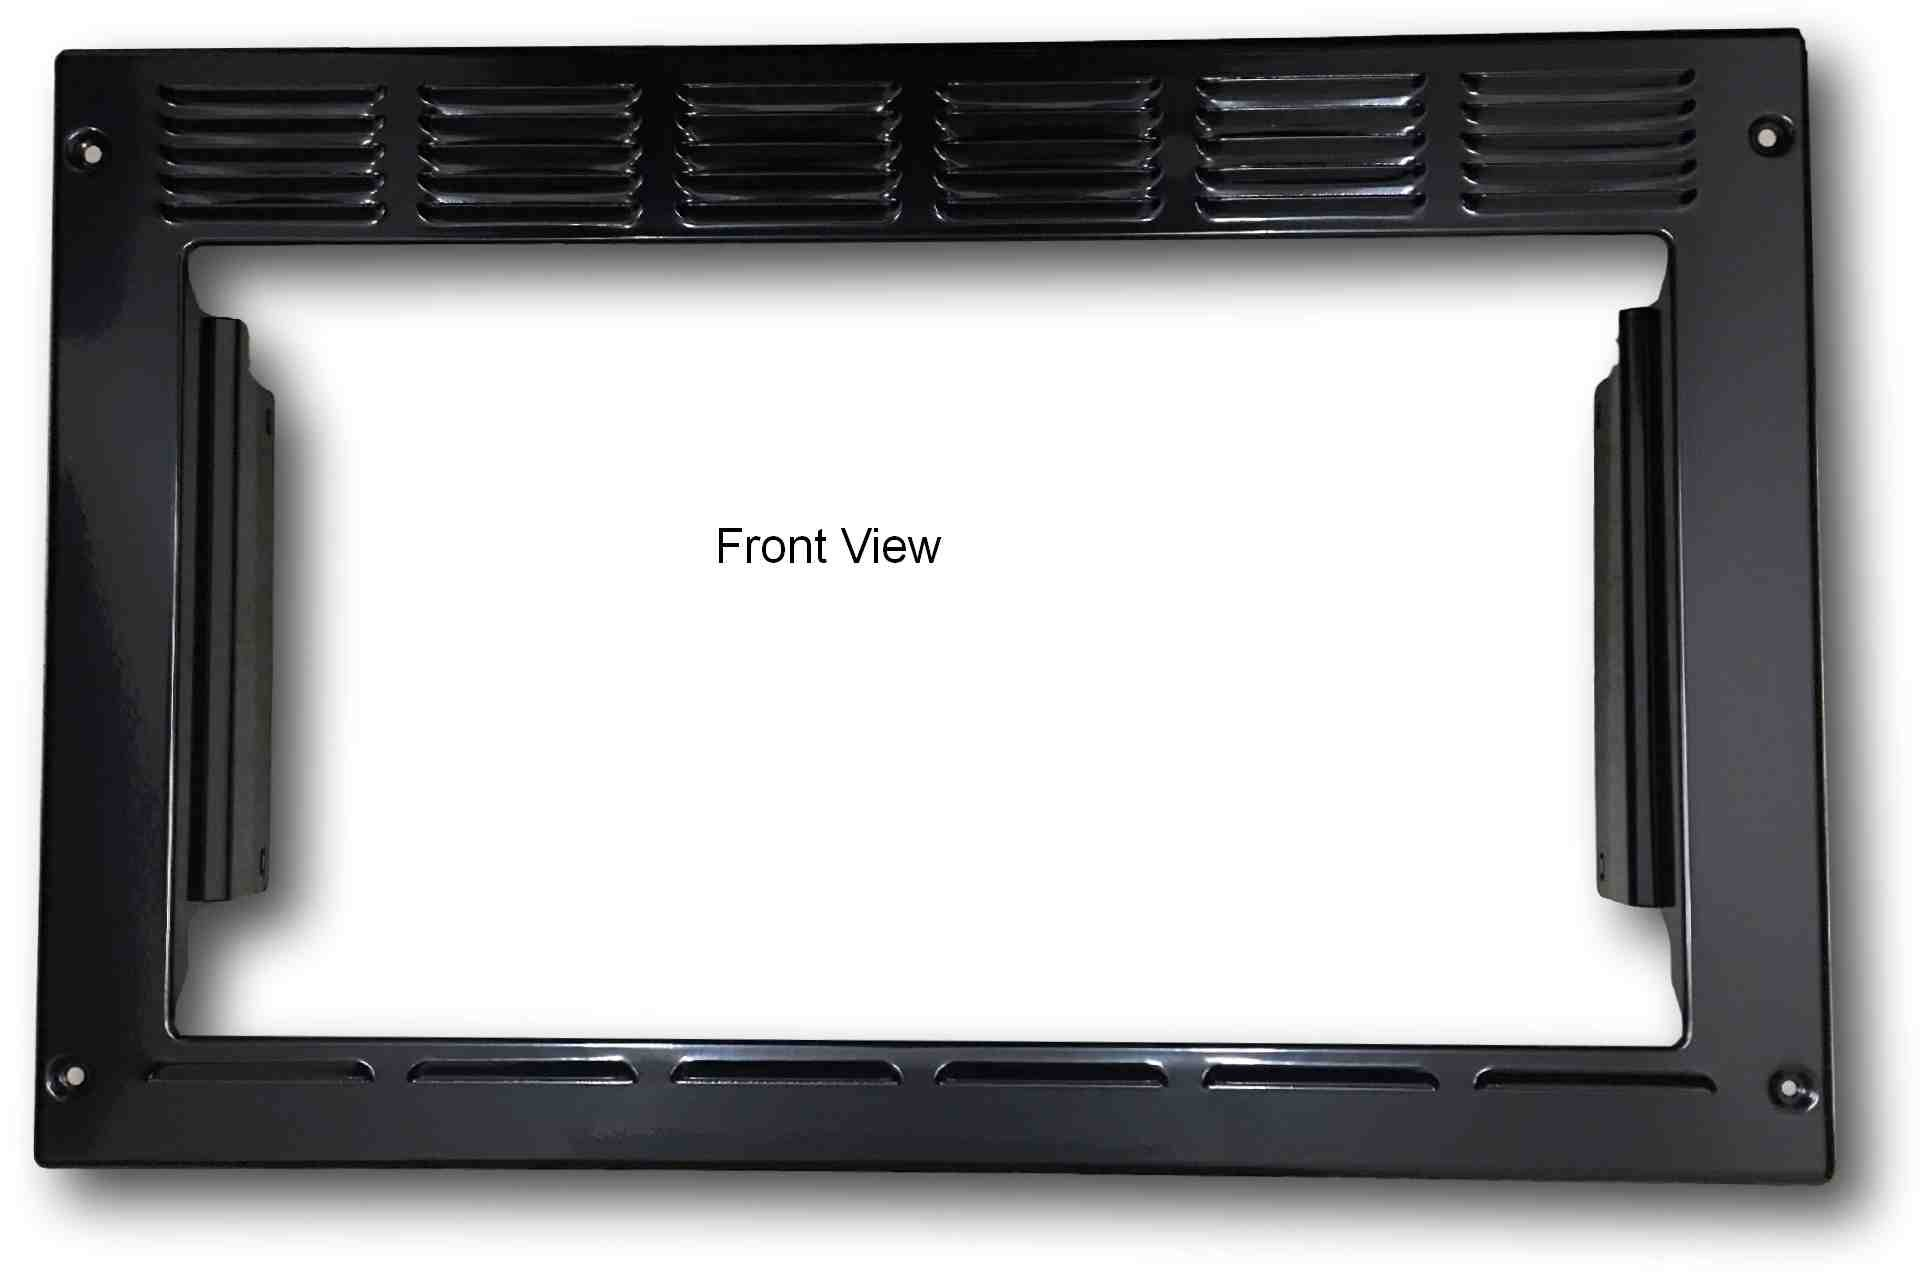 Advent PMWTRIM Trim Kit for MW900B and MW912B Black Built-in Microwave Oven, Black, Outside Dimensions: 23.25W x 15H x 2.75D in. Inside Opening: 19W x 10.5H in. Box: 24 x 15.25 x 3.25 in.